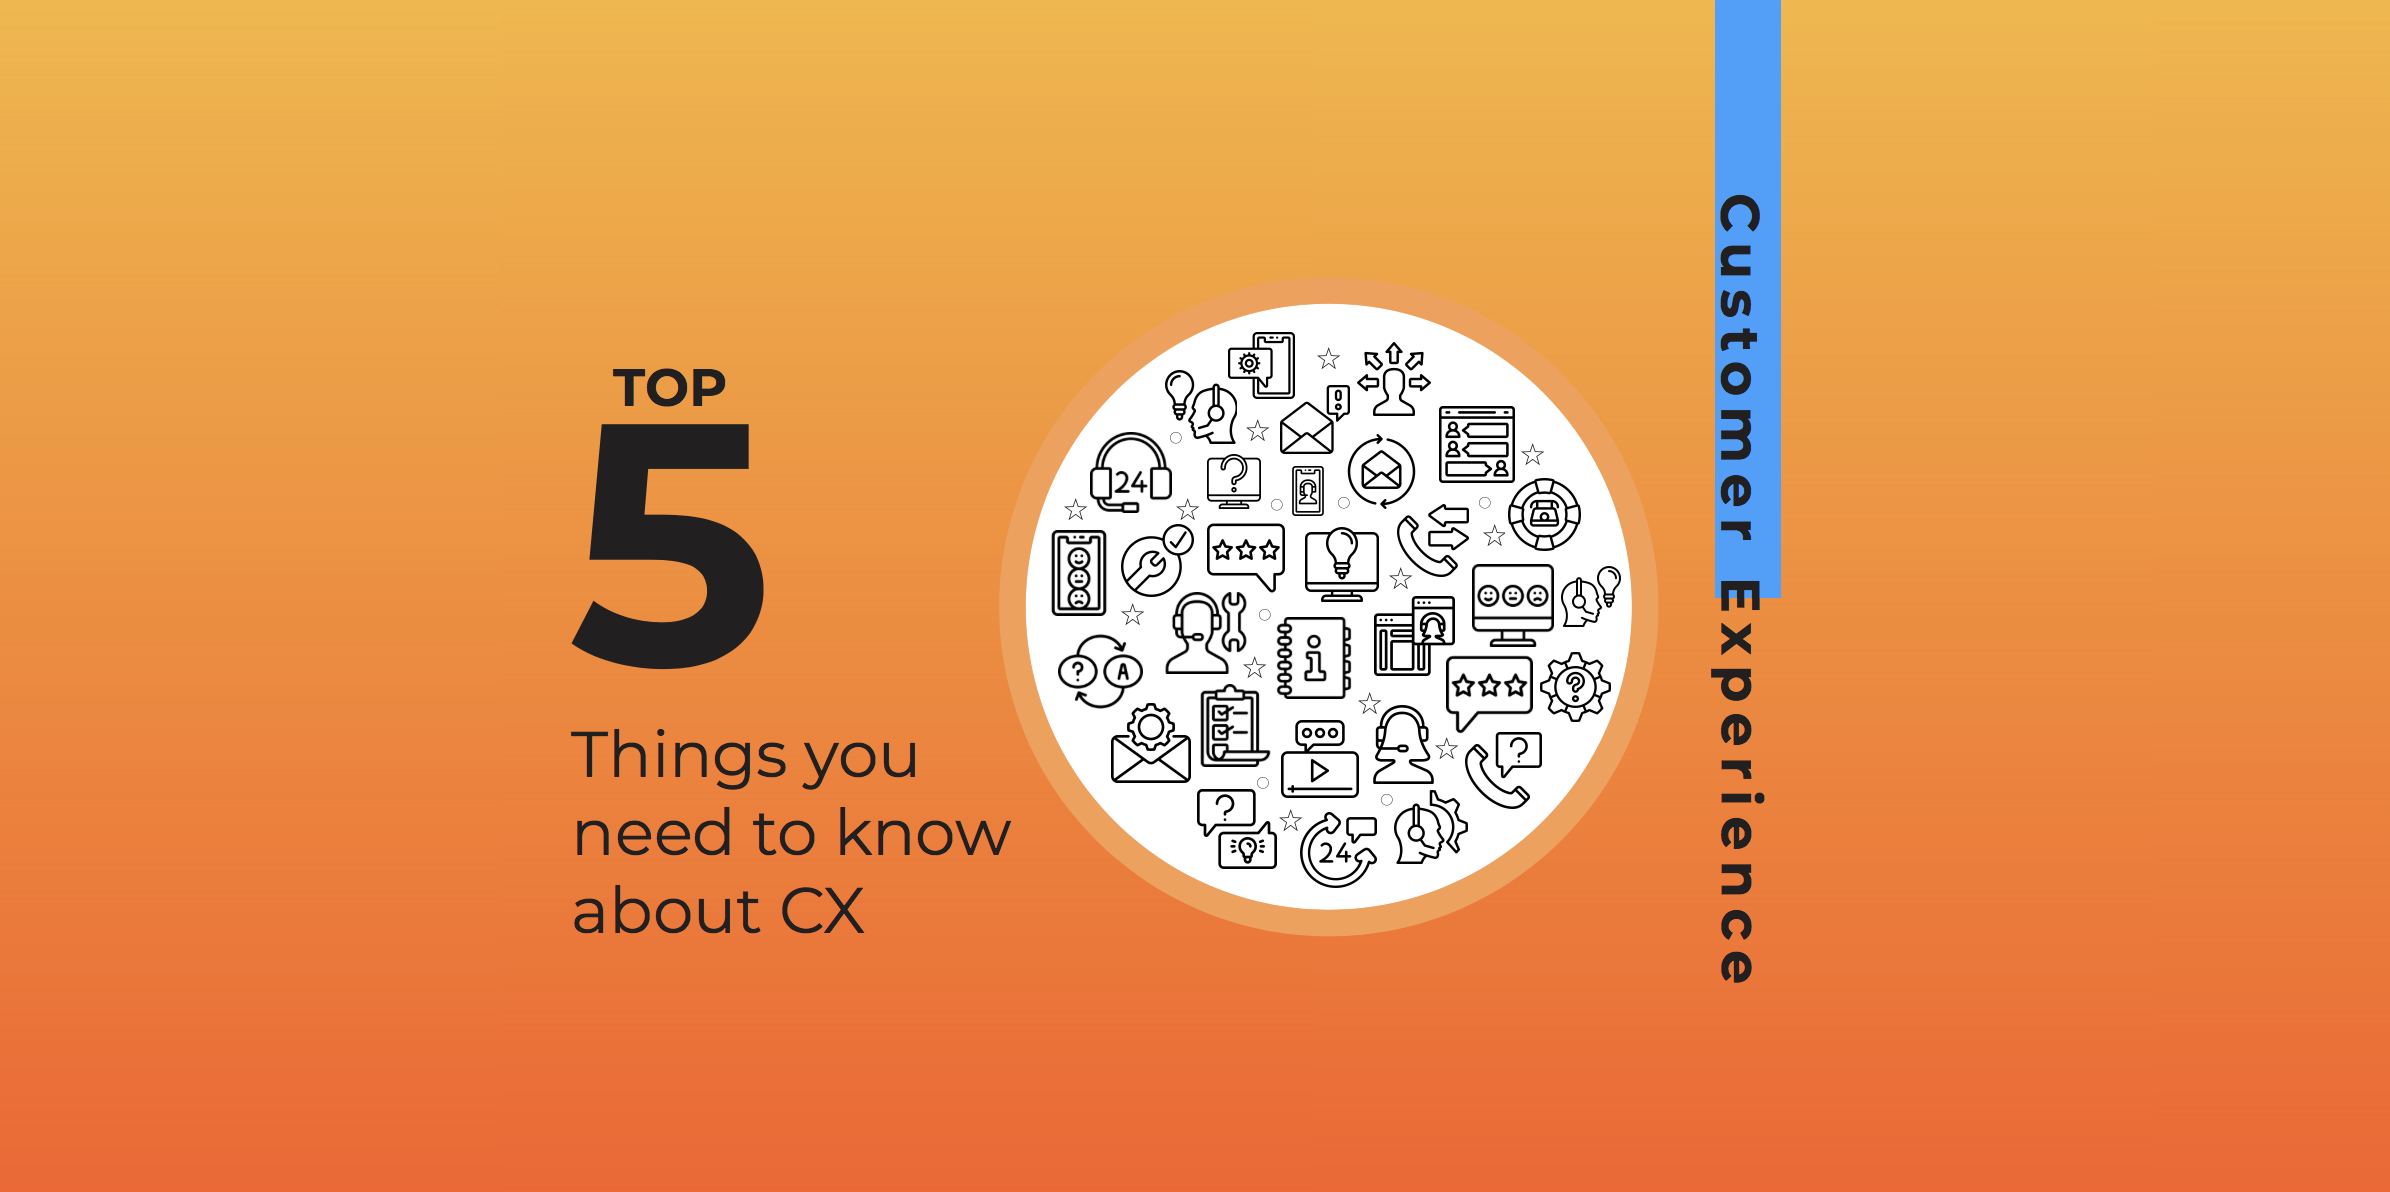 Top 5 Things you need to know about CX